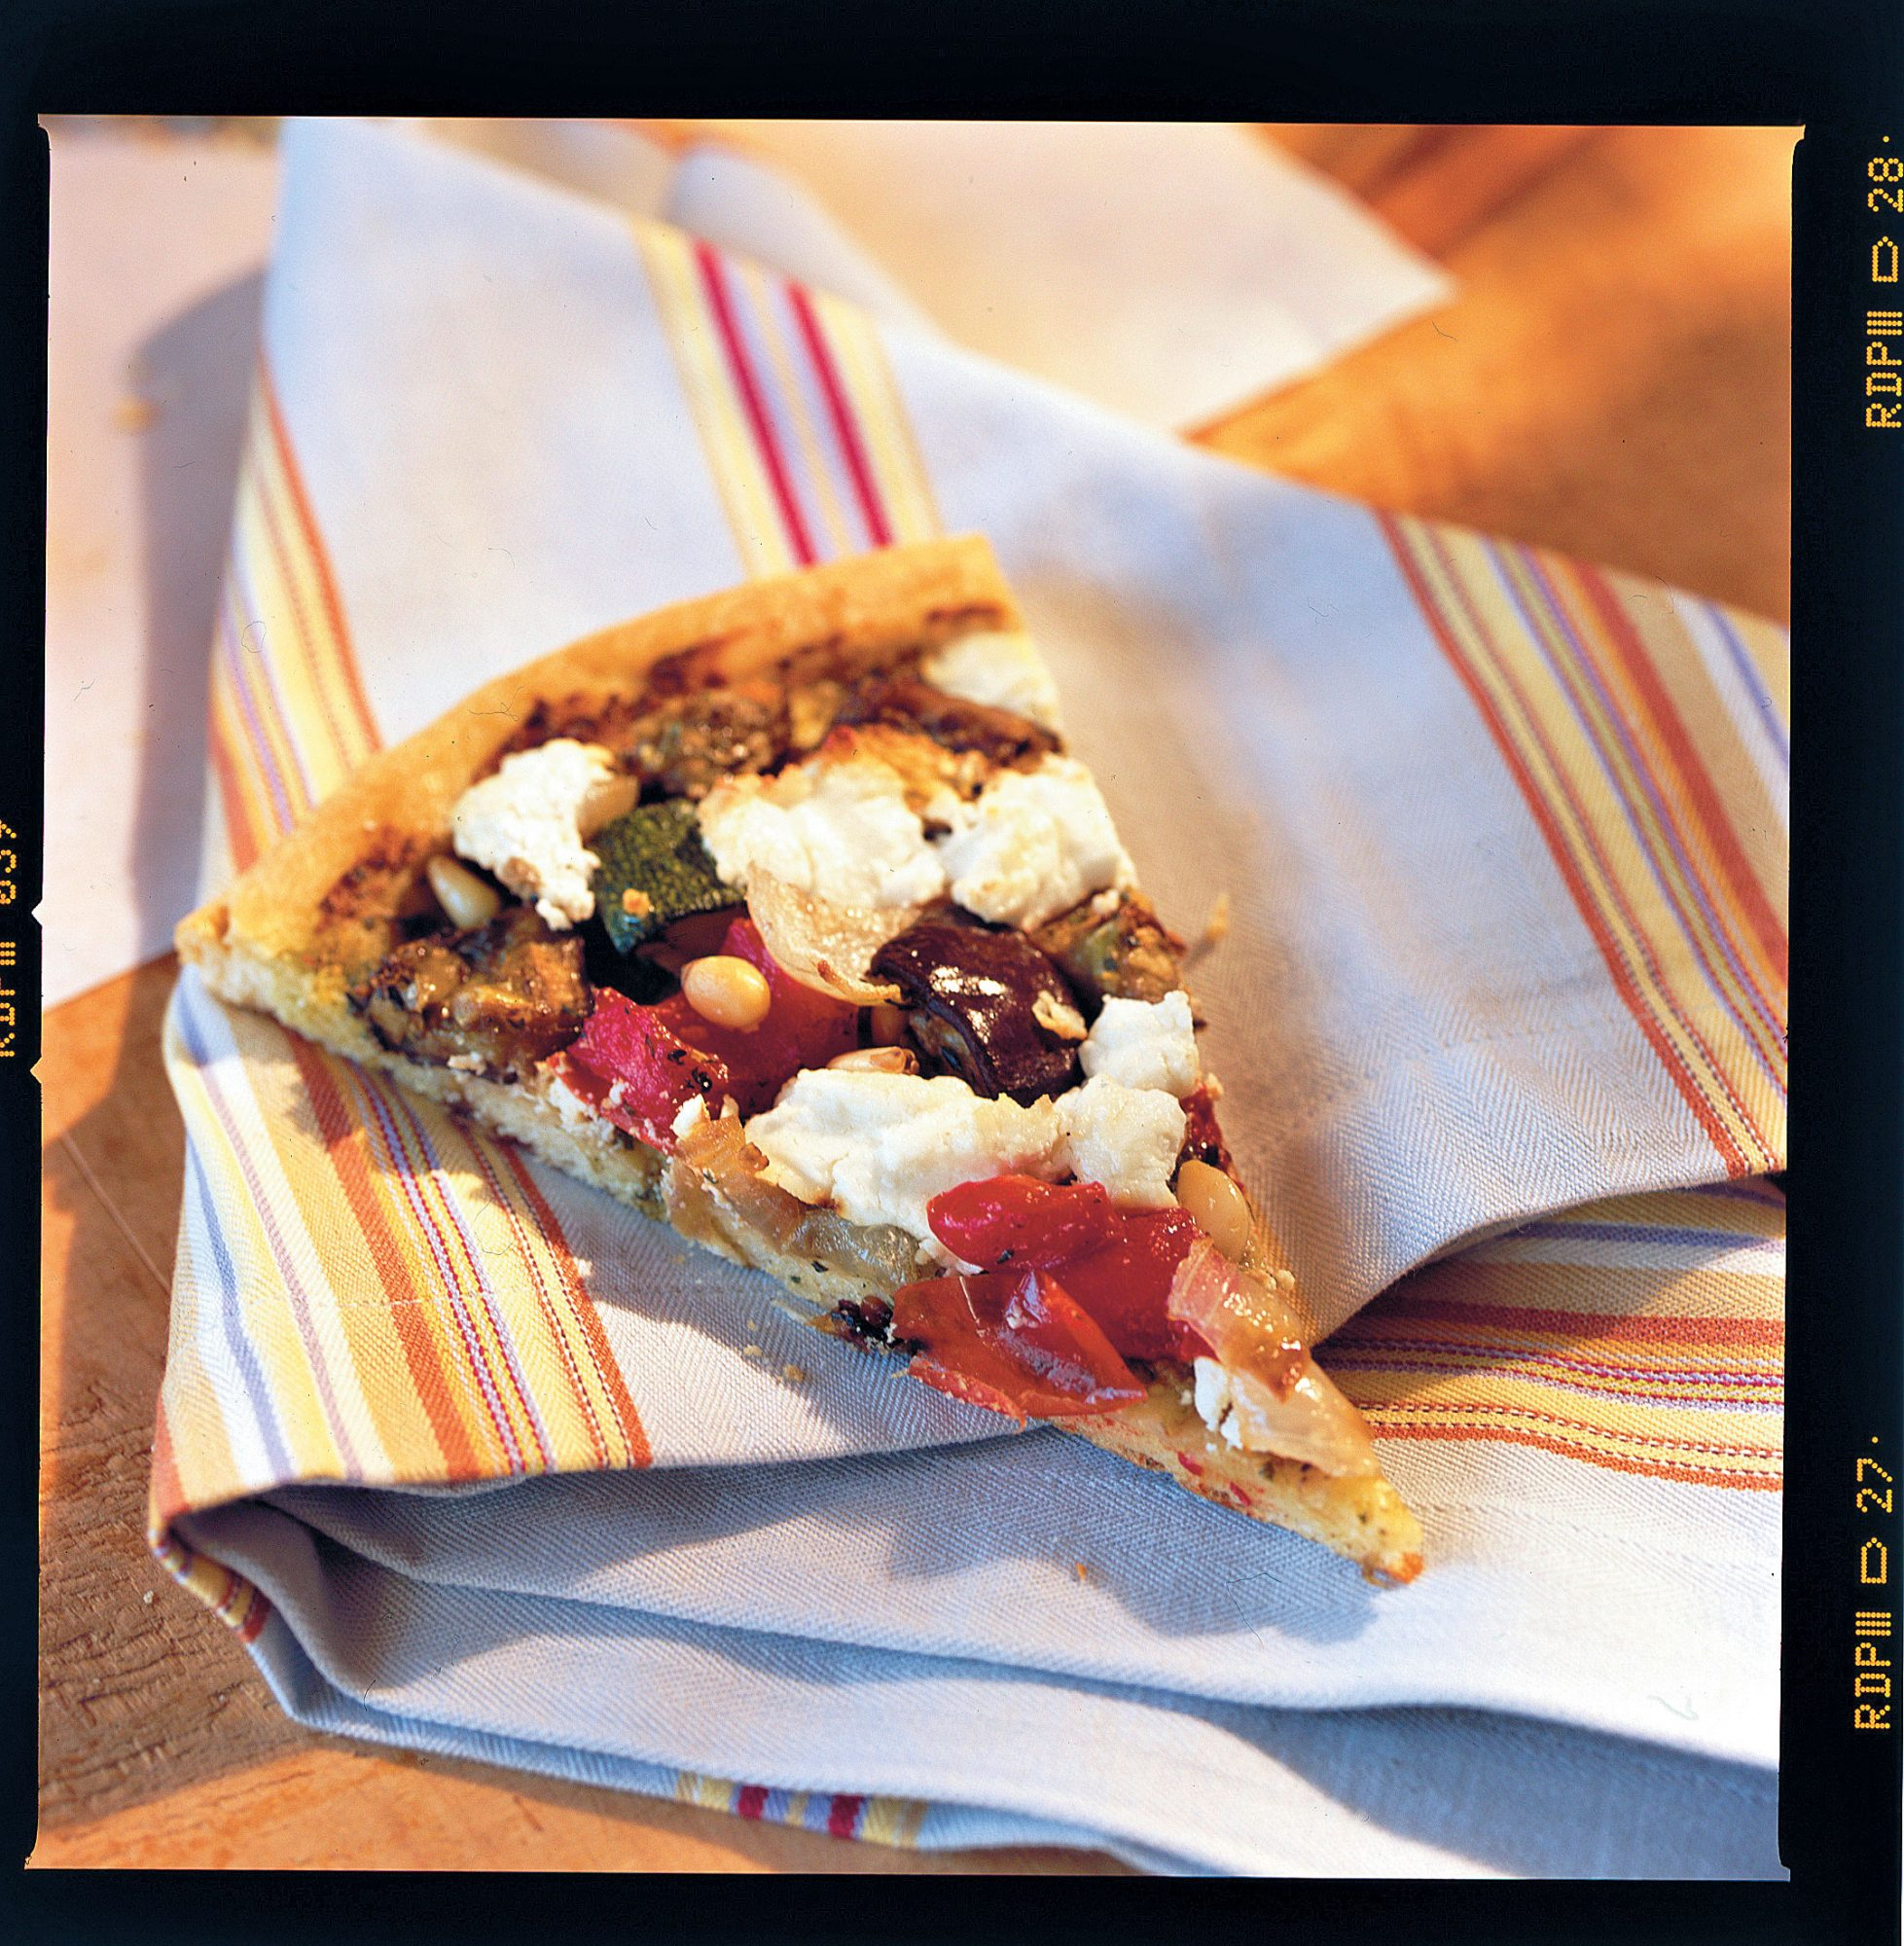 Pizza Recipes: Roasted Vegetable-and-Goat Cheese Pizza